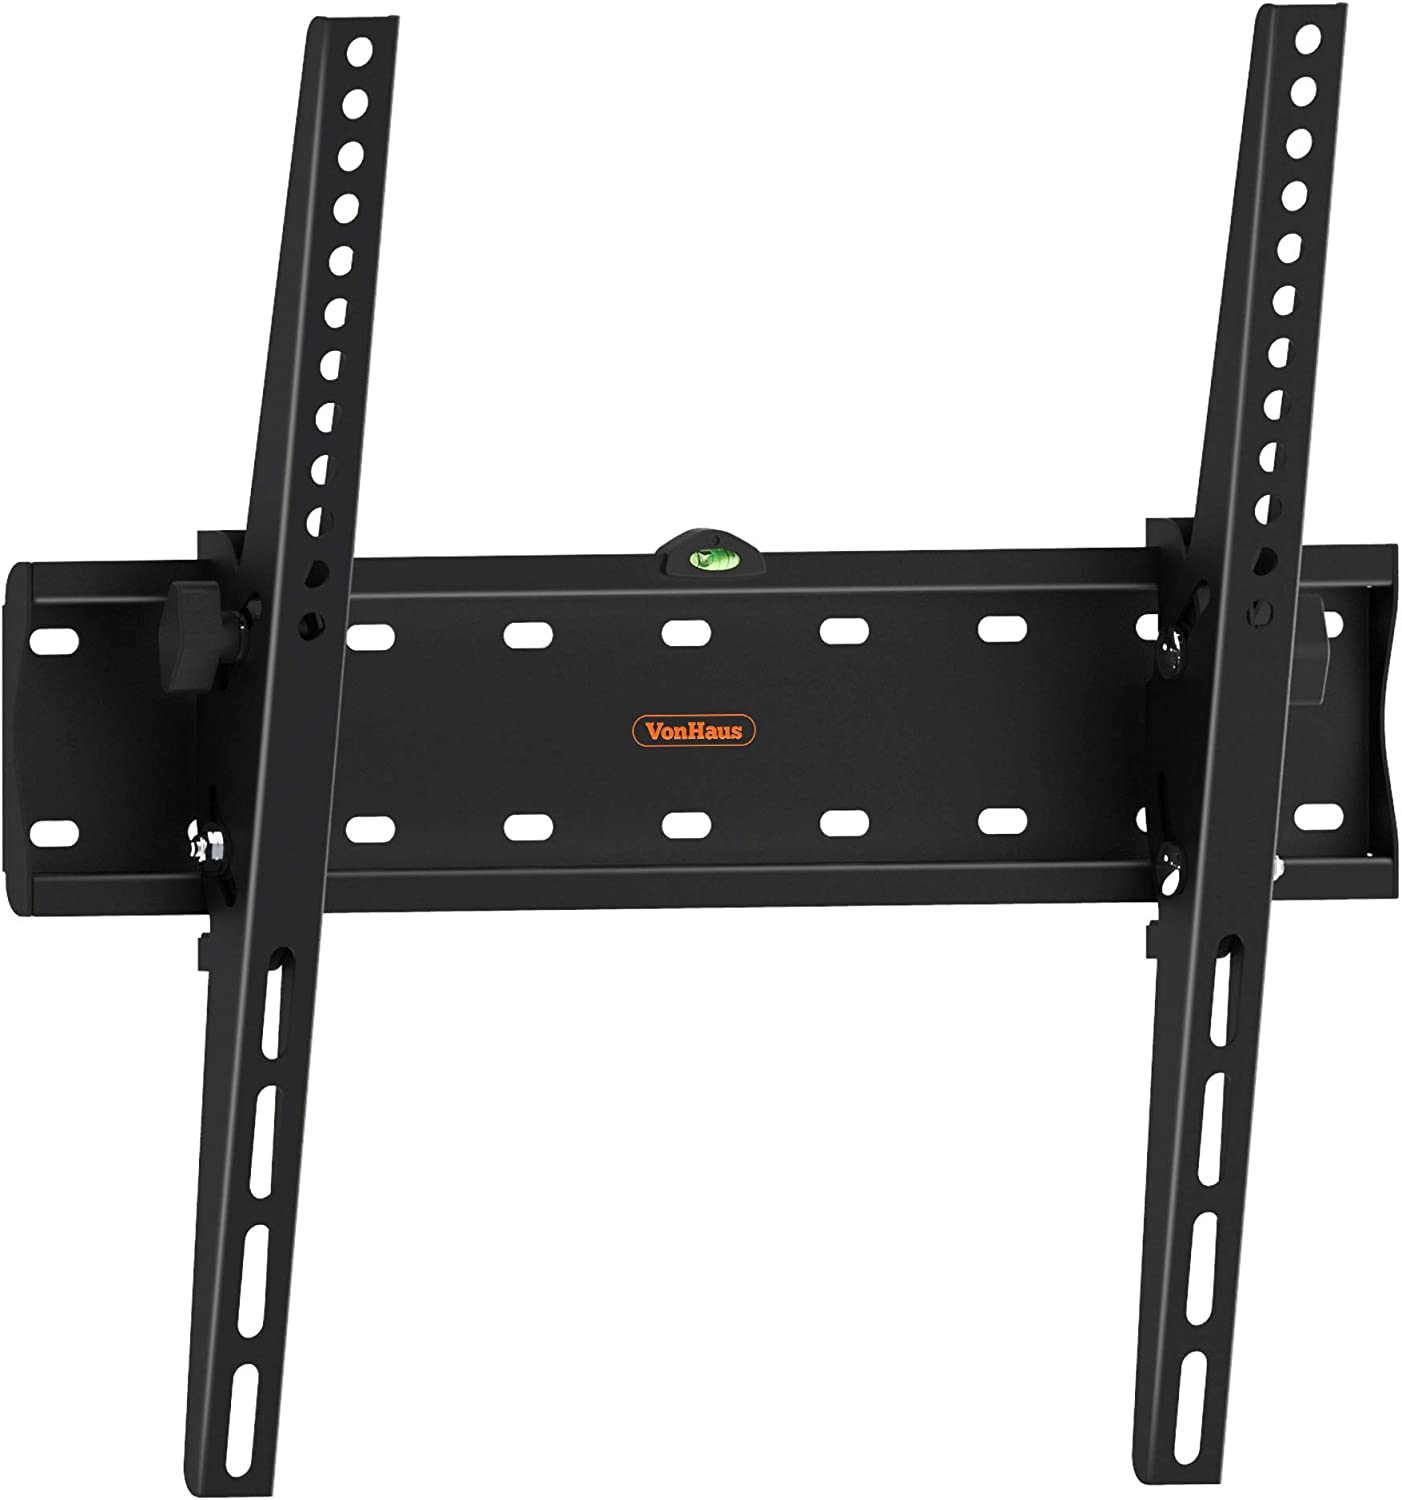 VonHaus Soporte de Pared para TV de 26